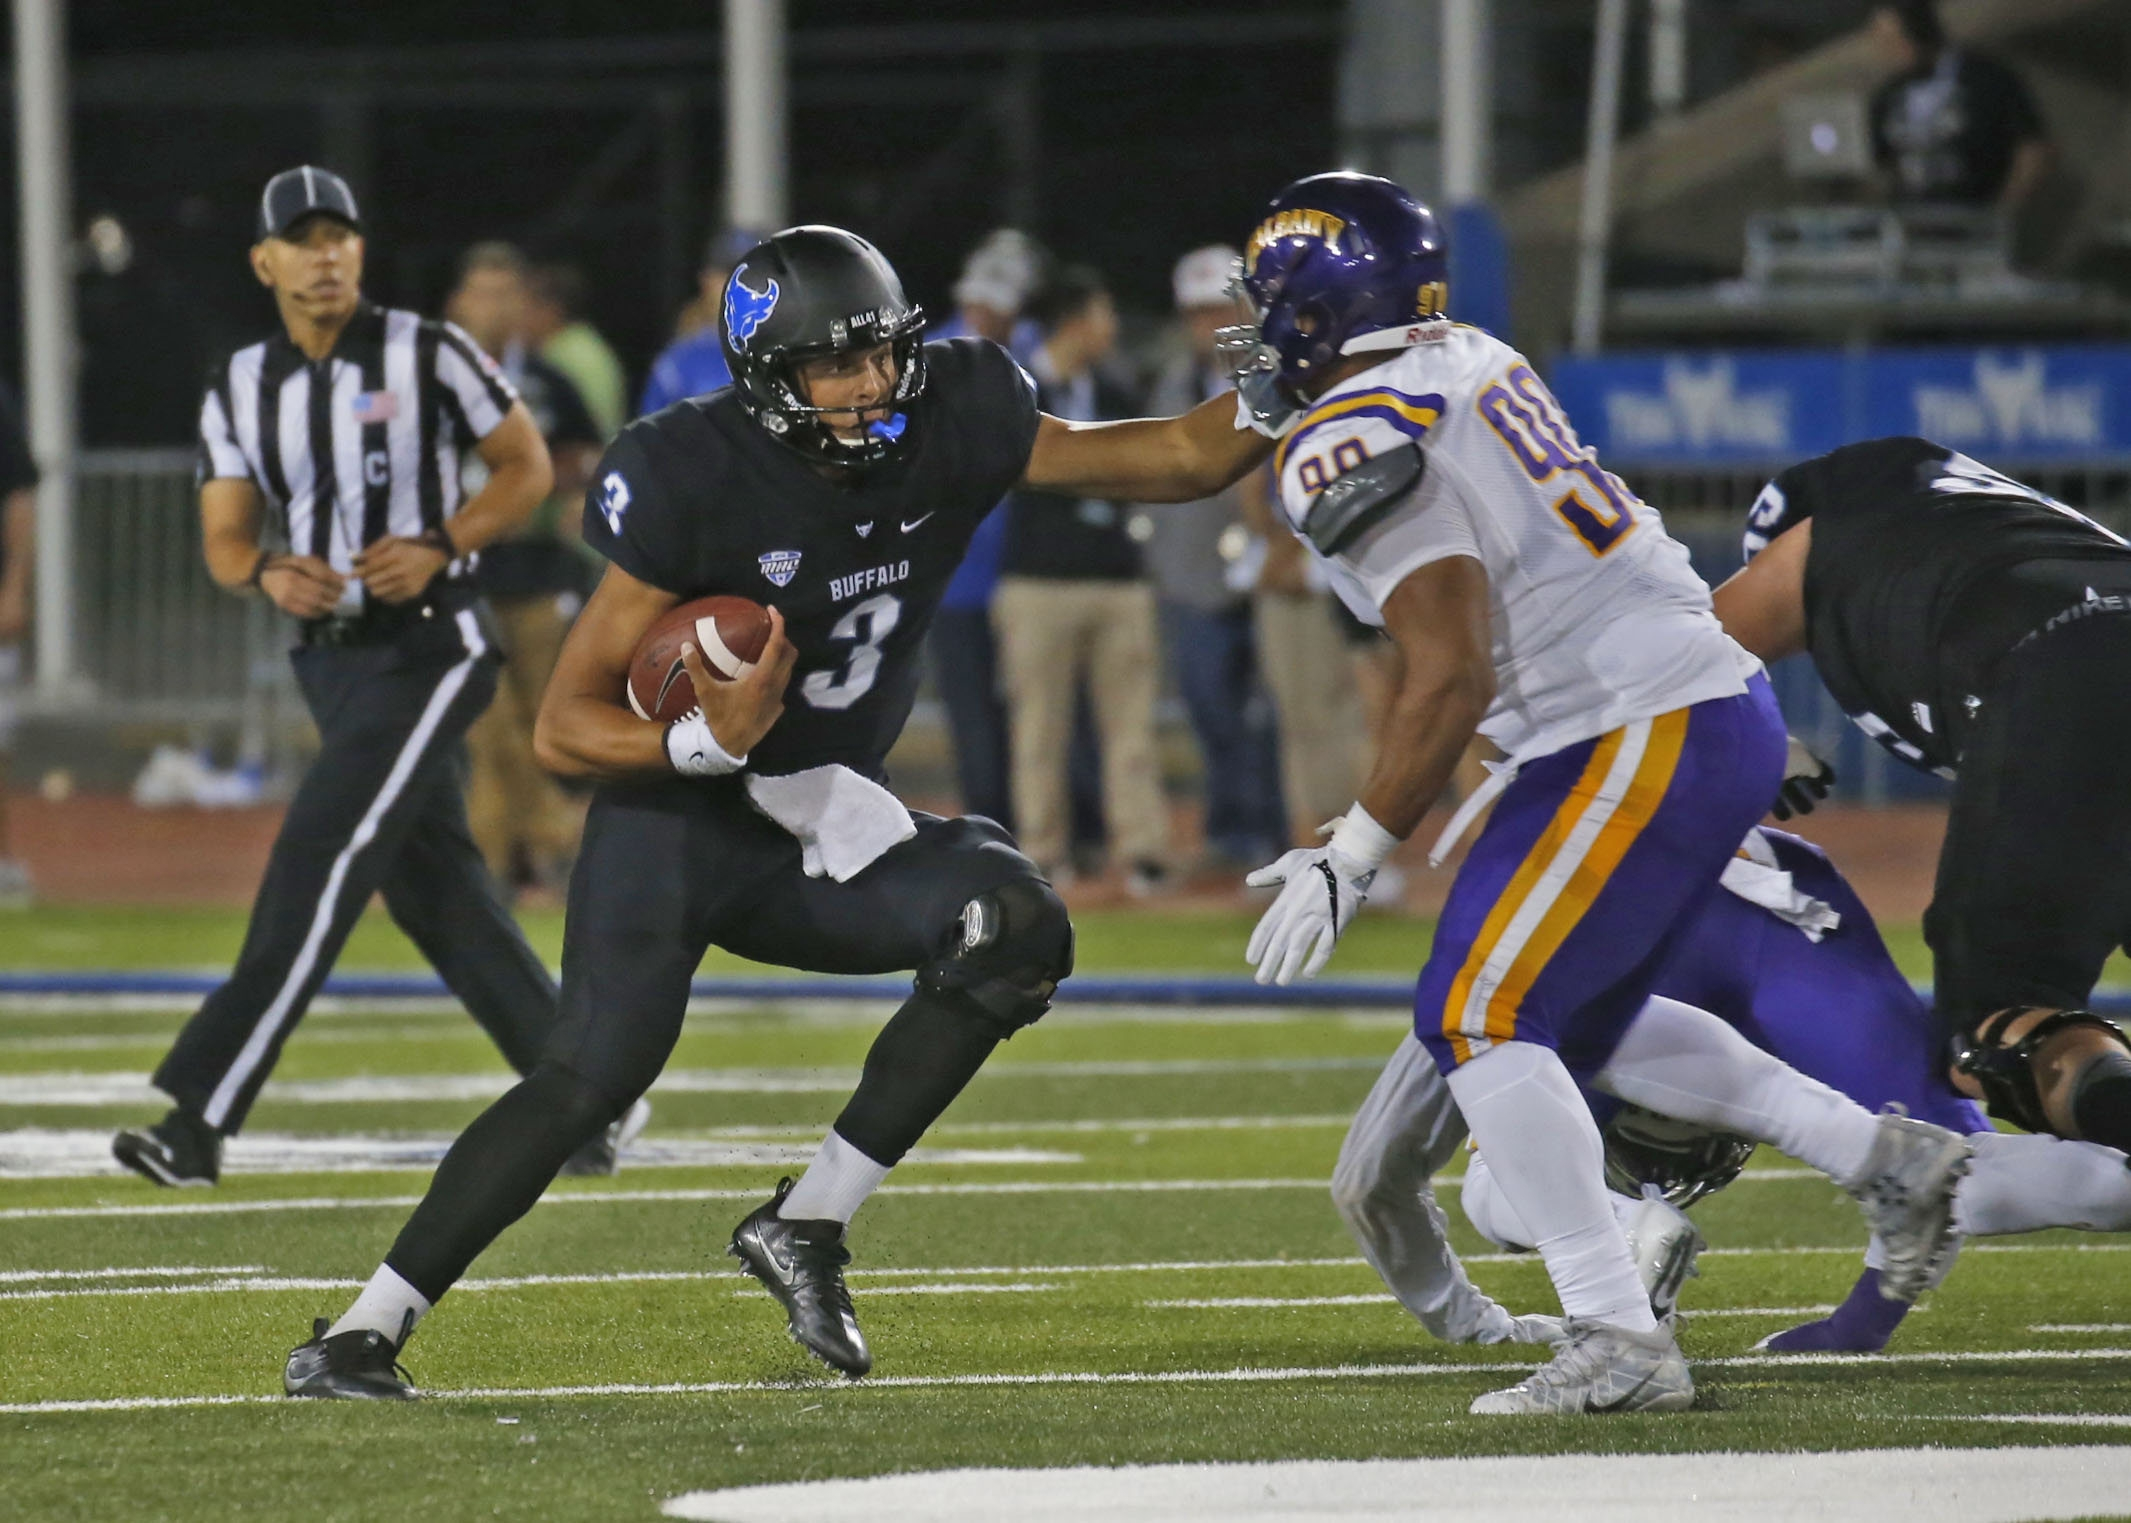 UB quarterback Tyree Jackson tries to grab some yards on a keeper during Friday night's game at UB Stadium.